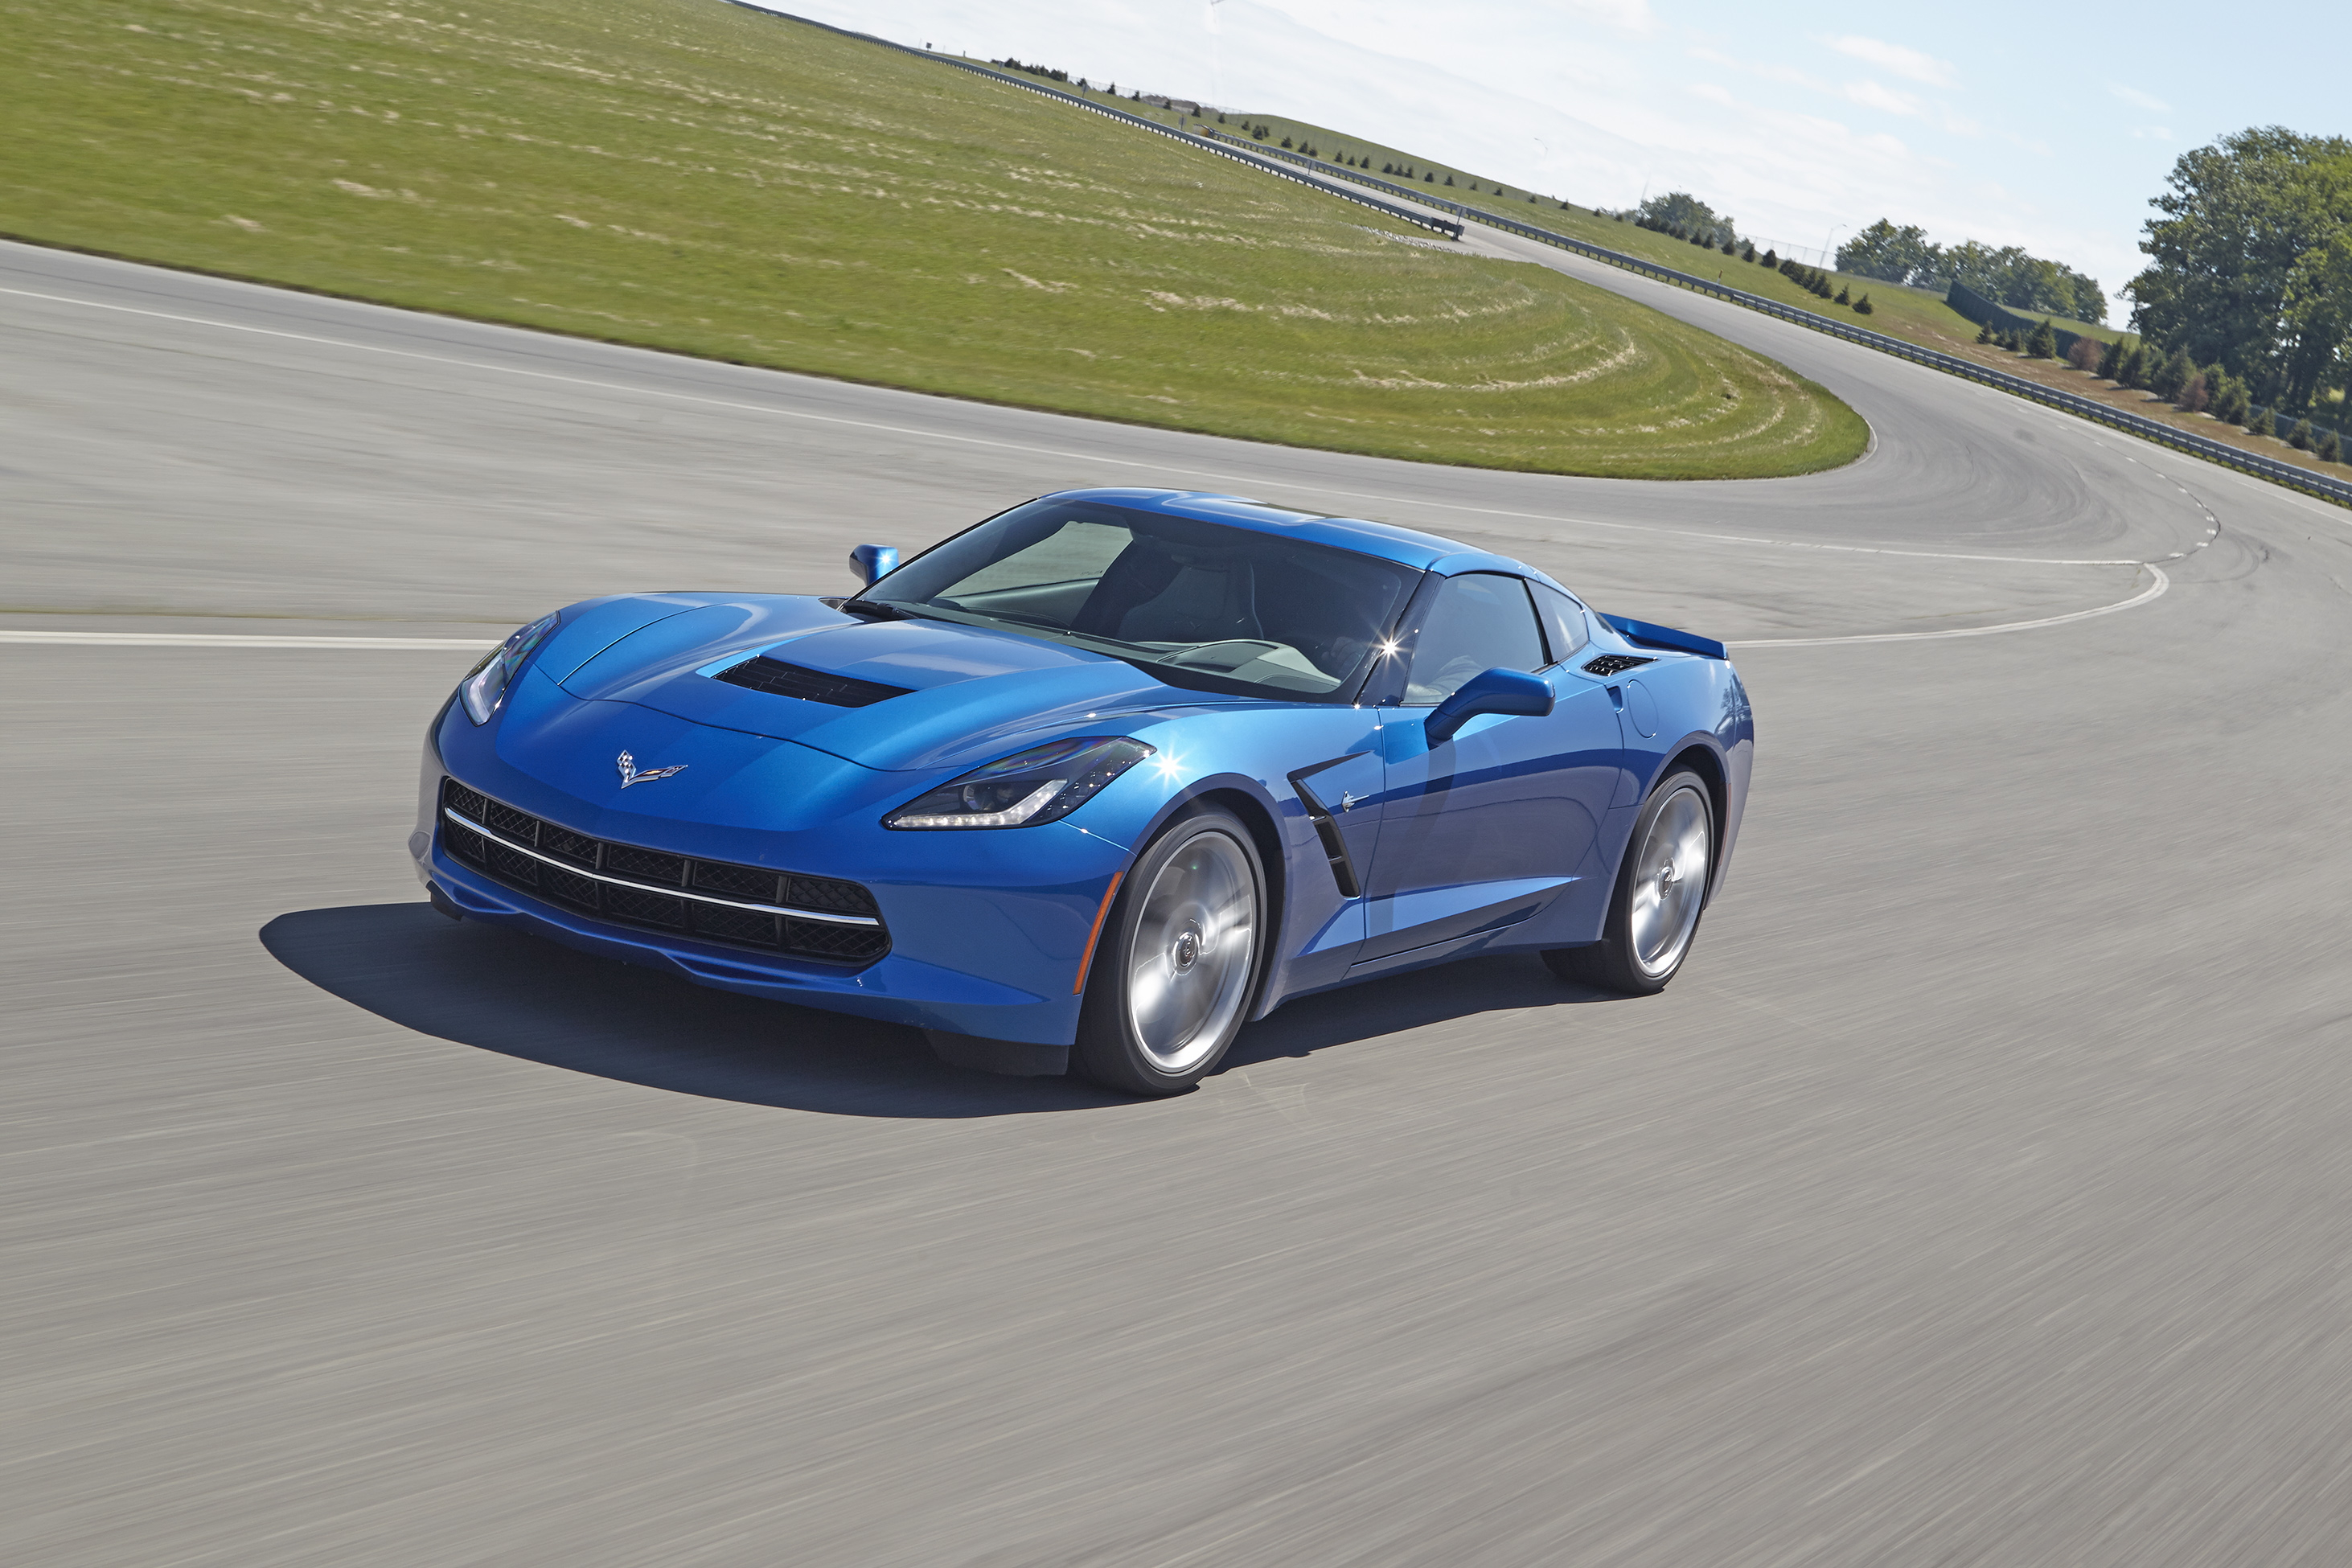 8-Speed Automatic Makes Corvette Faster, More Efficient